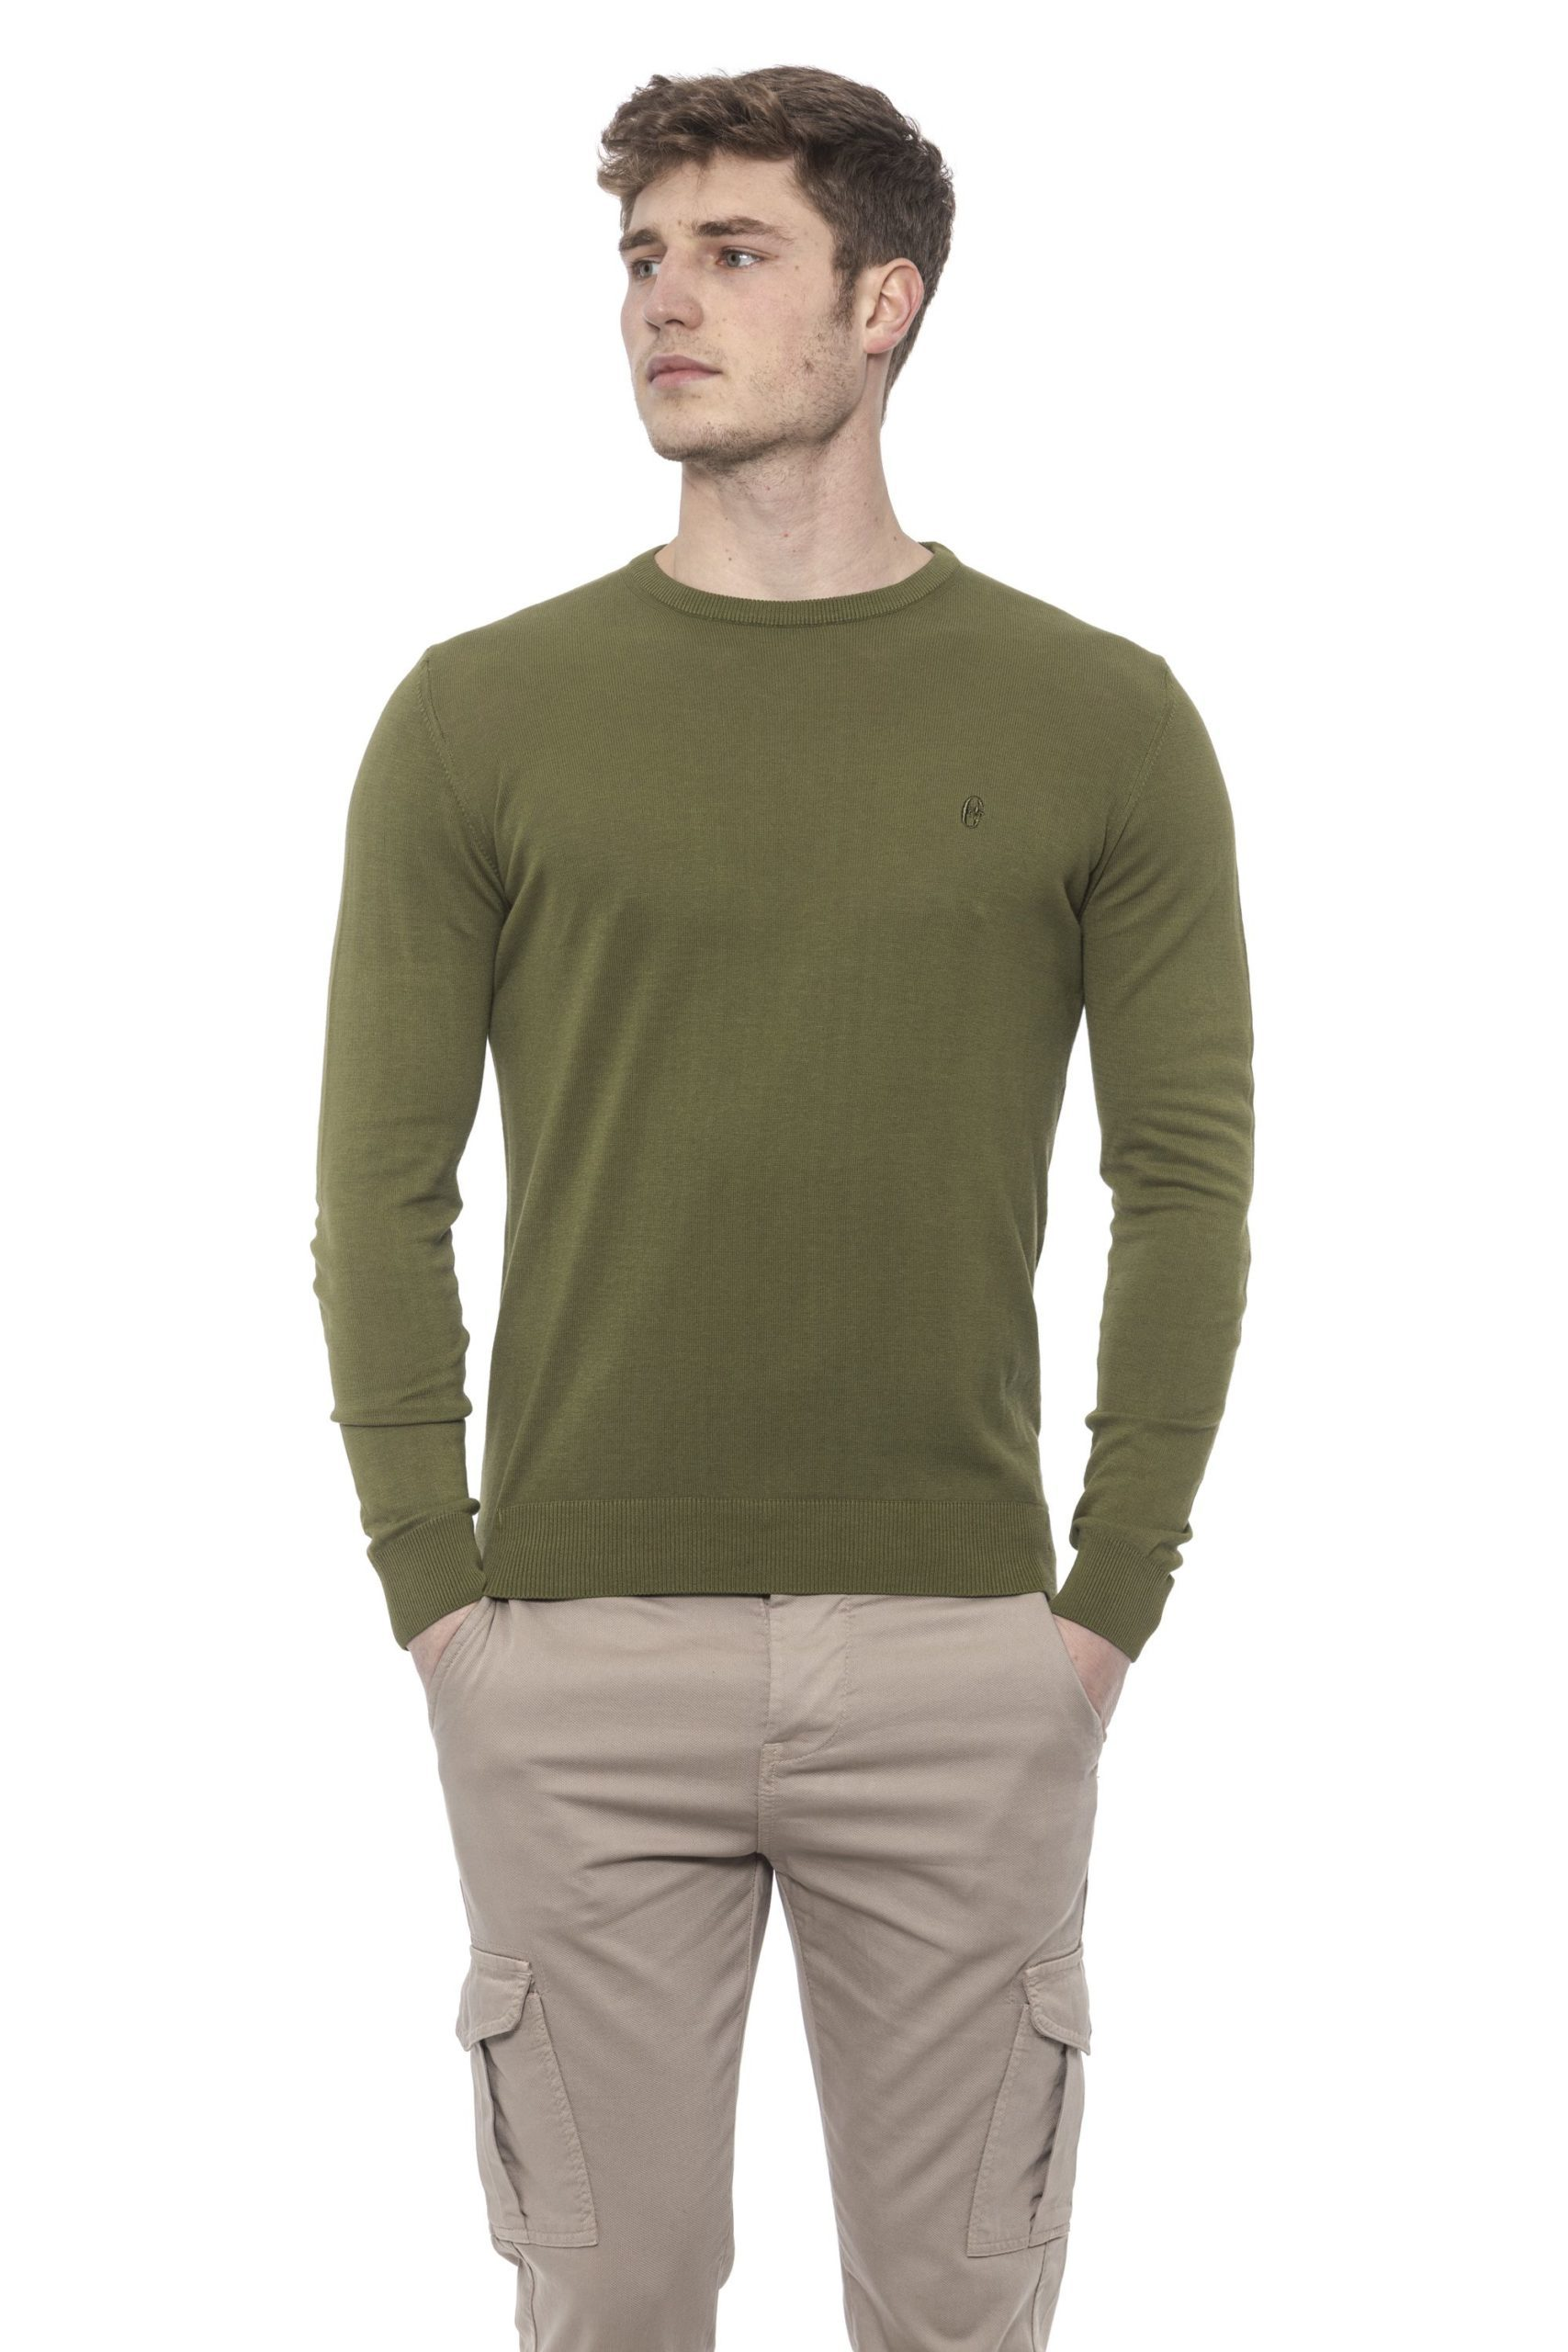 Conte of Florence Men's Sweater Green CO1376434 - S